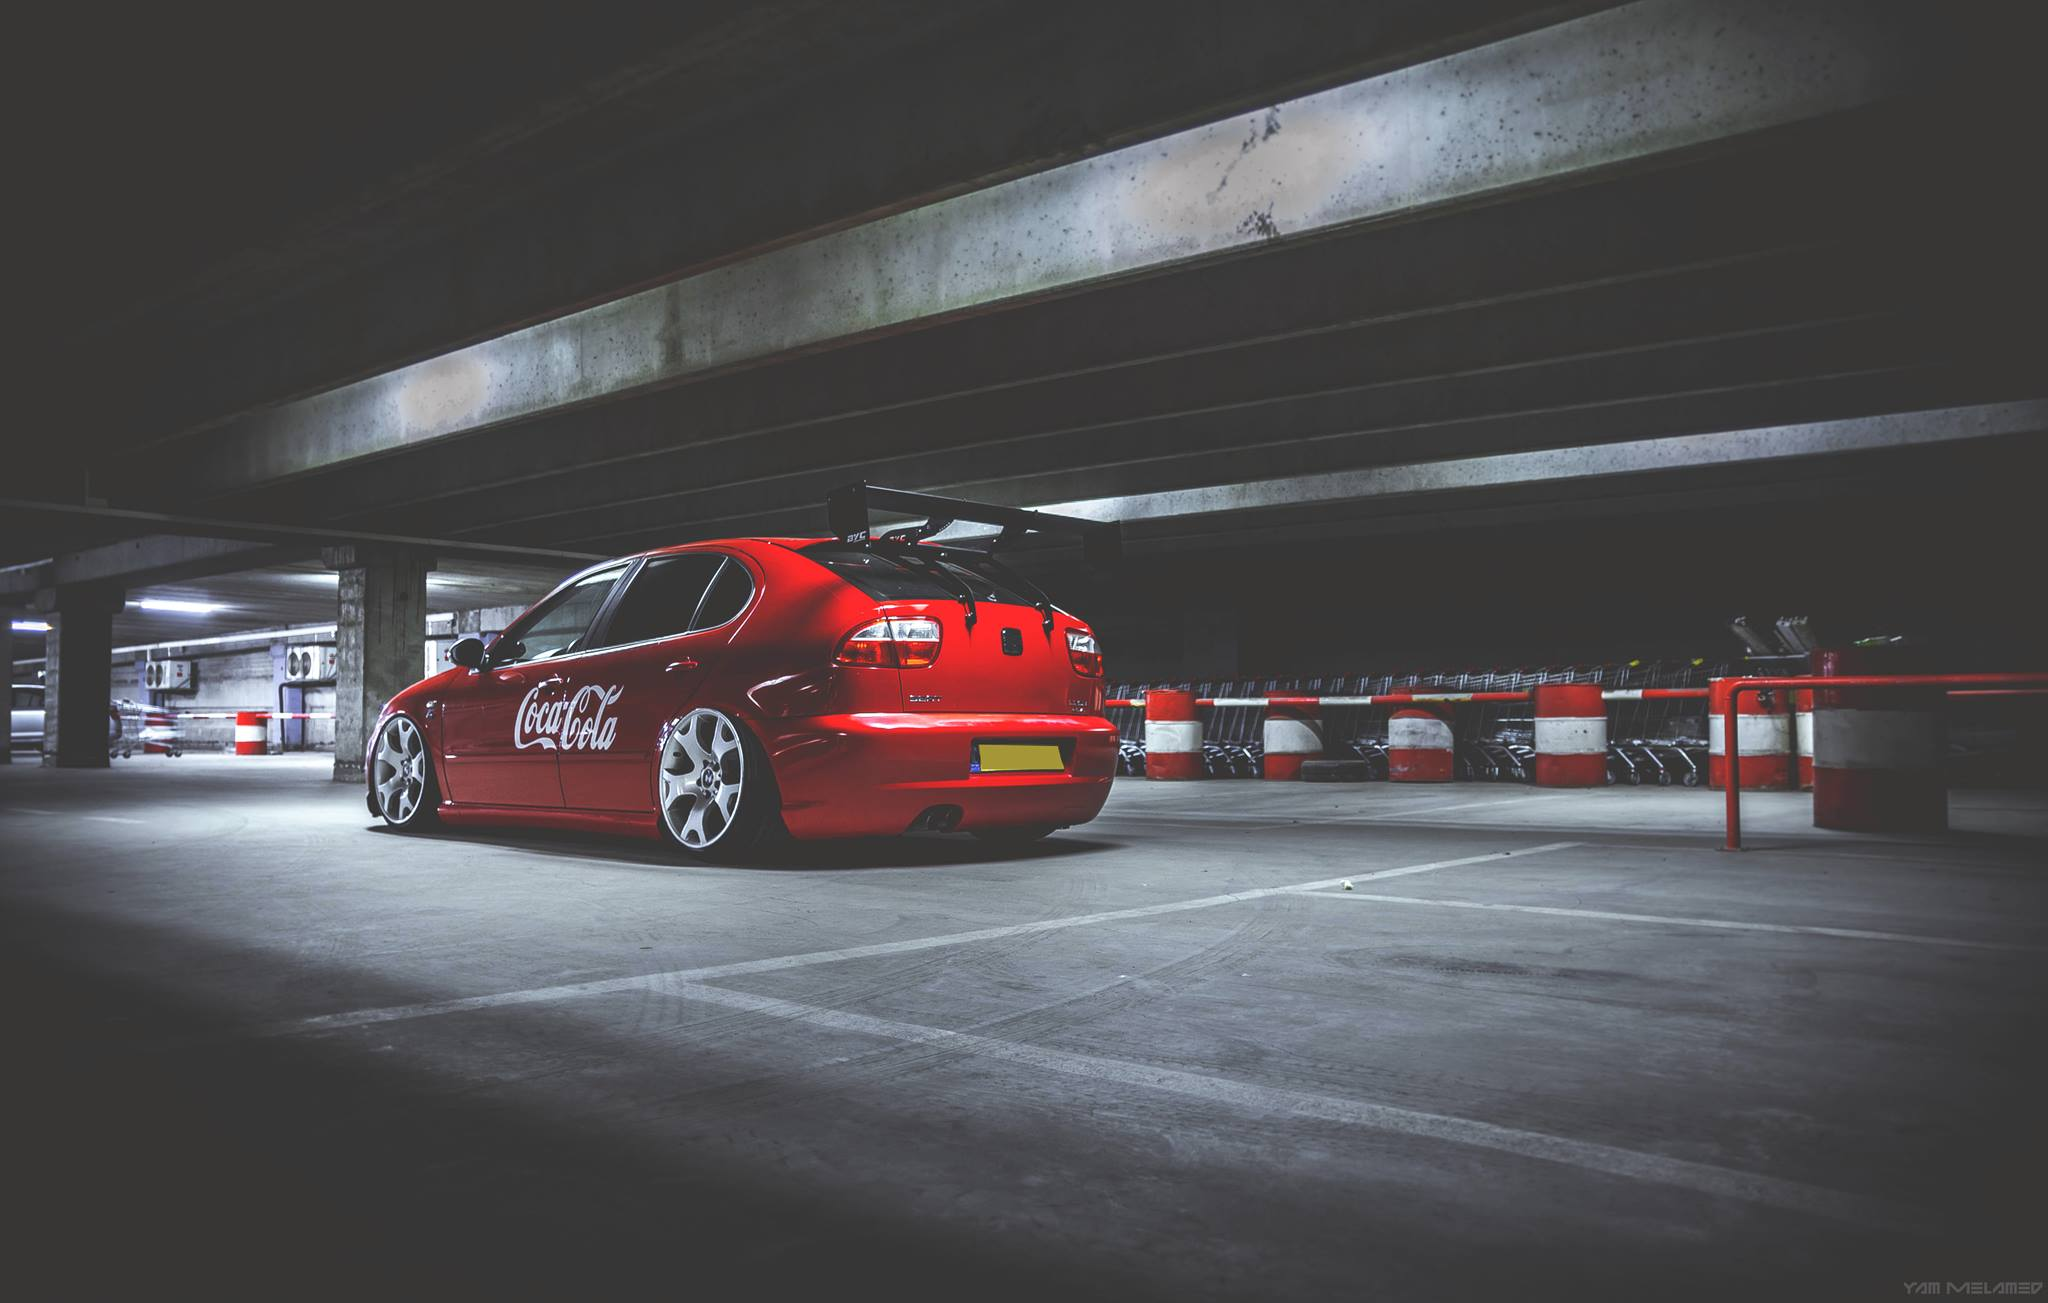 Seat Leon, Stance, Formed, Wheels, Airride